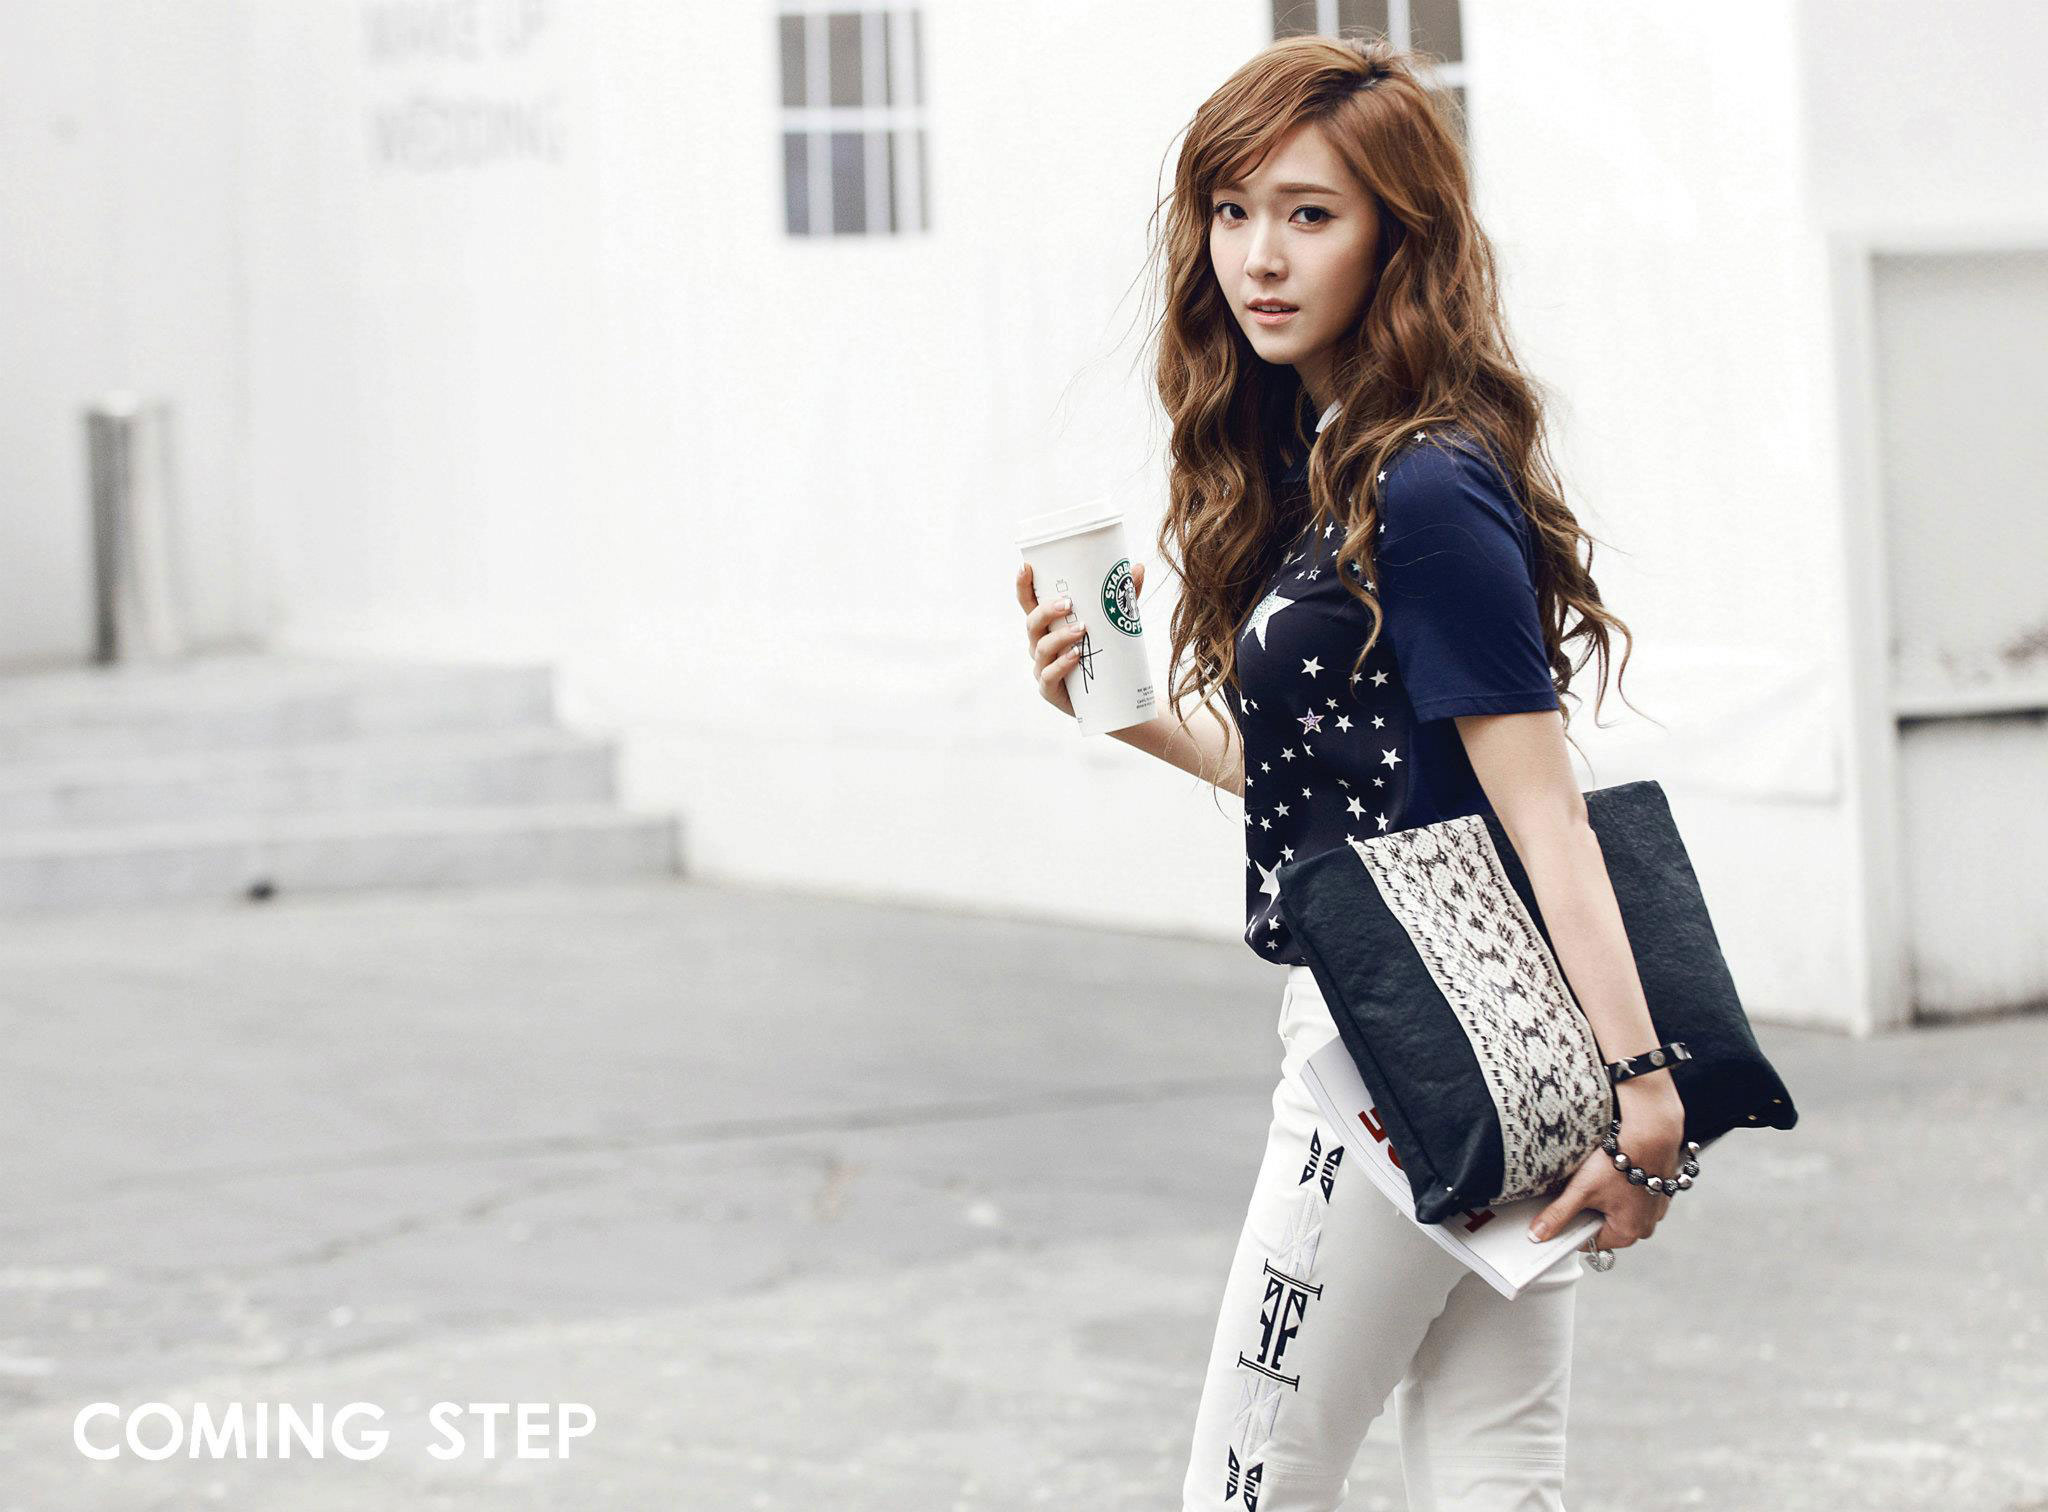 Jessica Jessica Snsd Photo 32685286 Fanpop